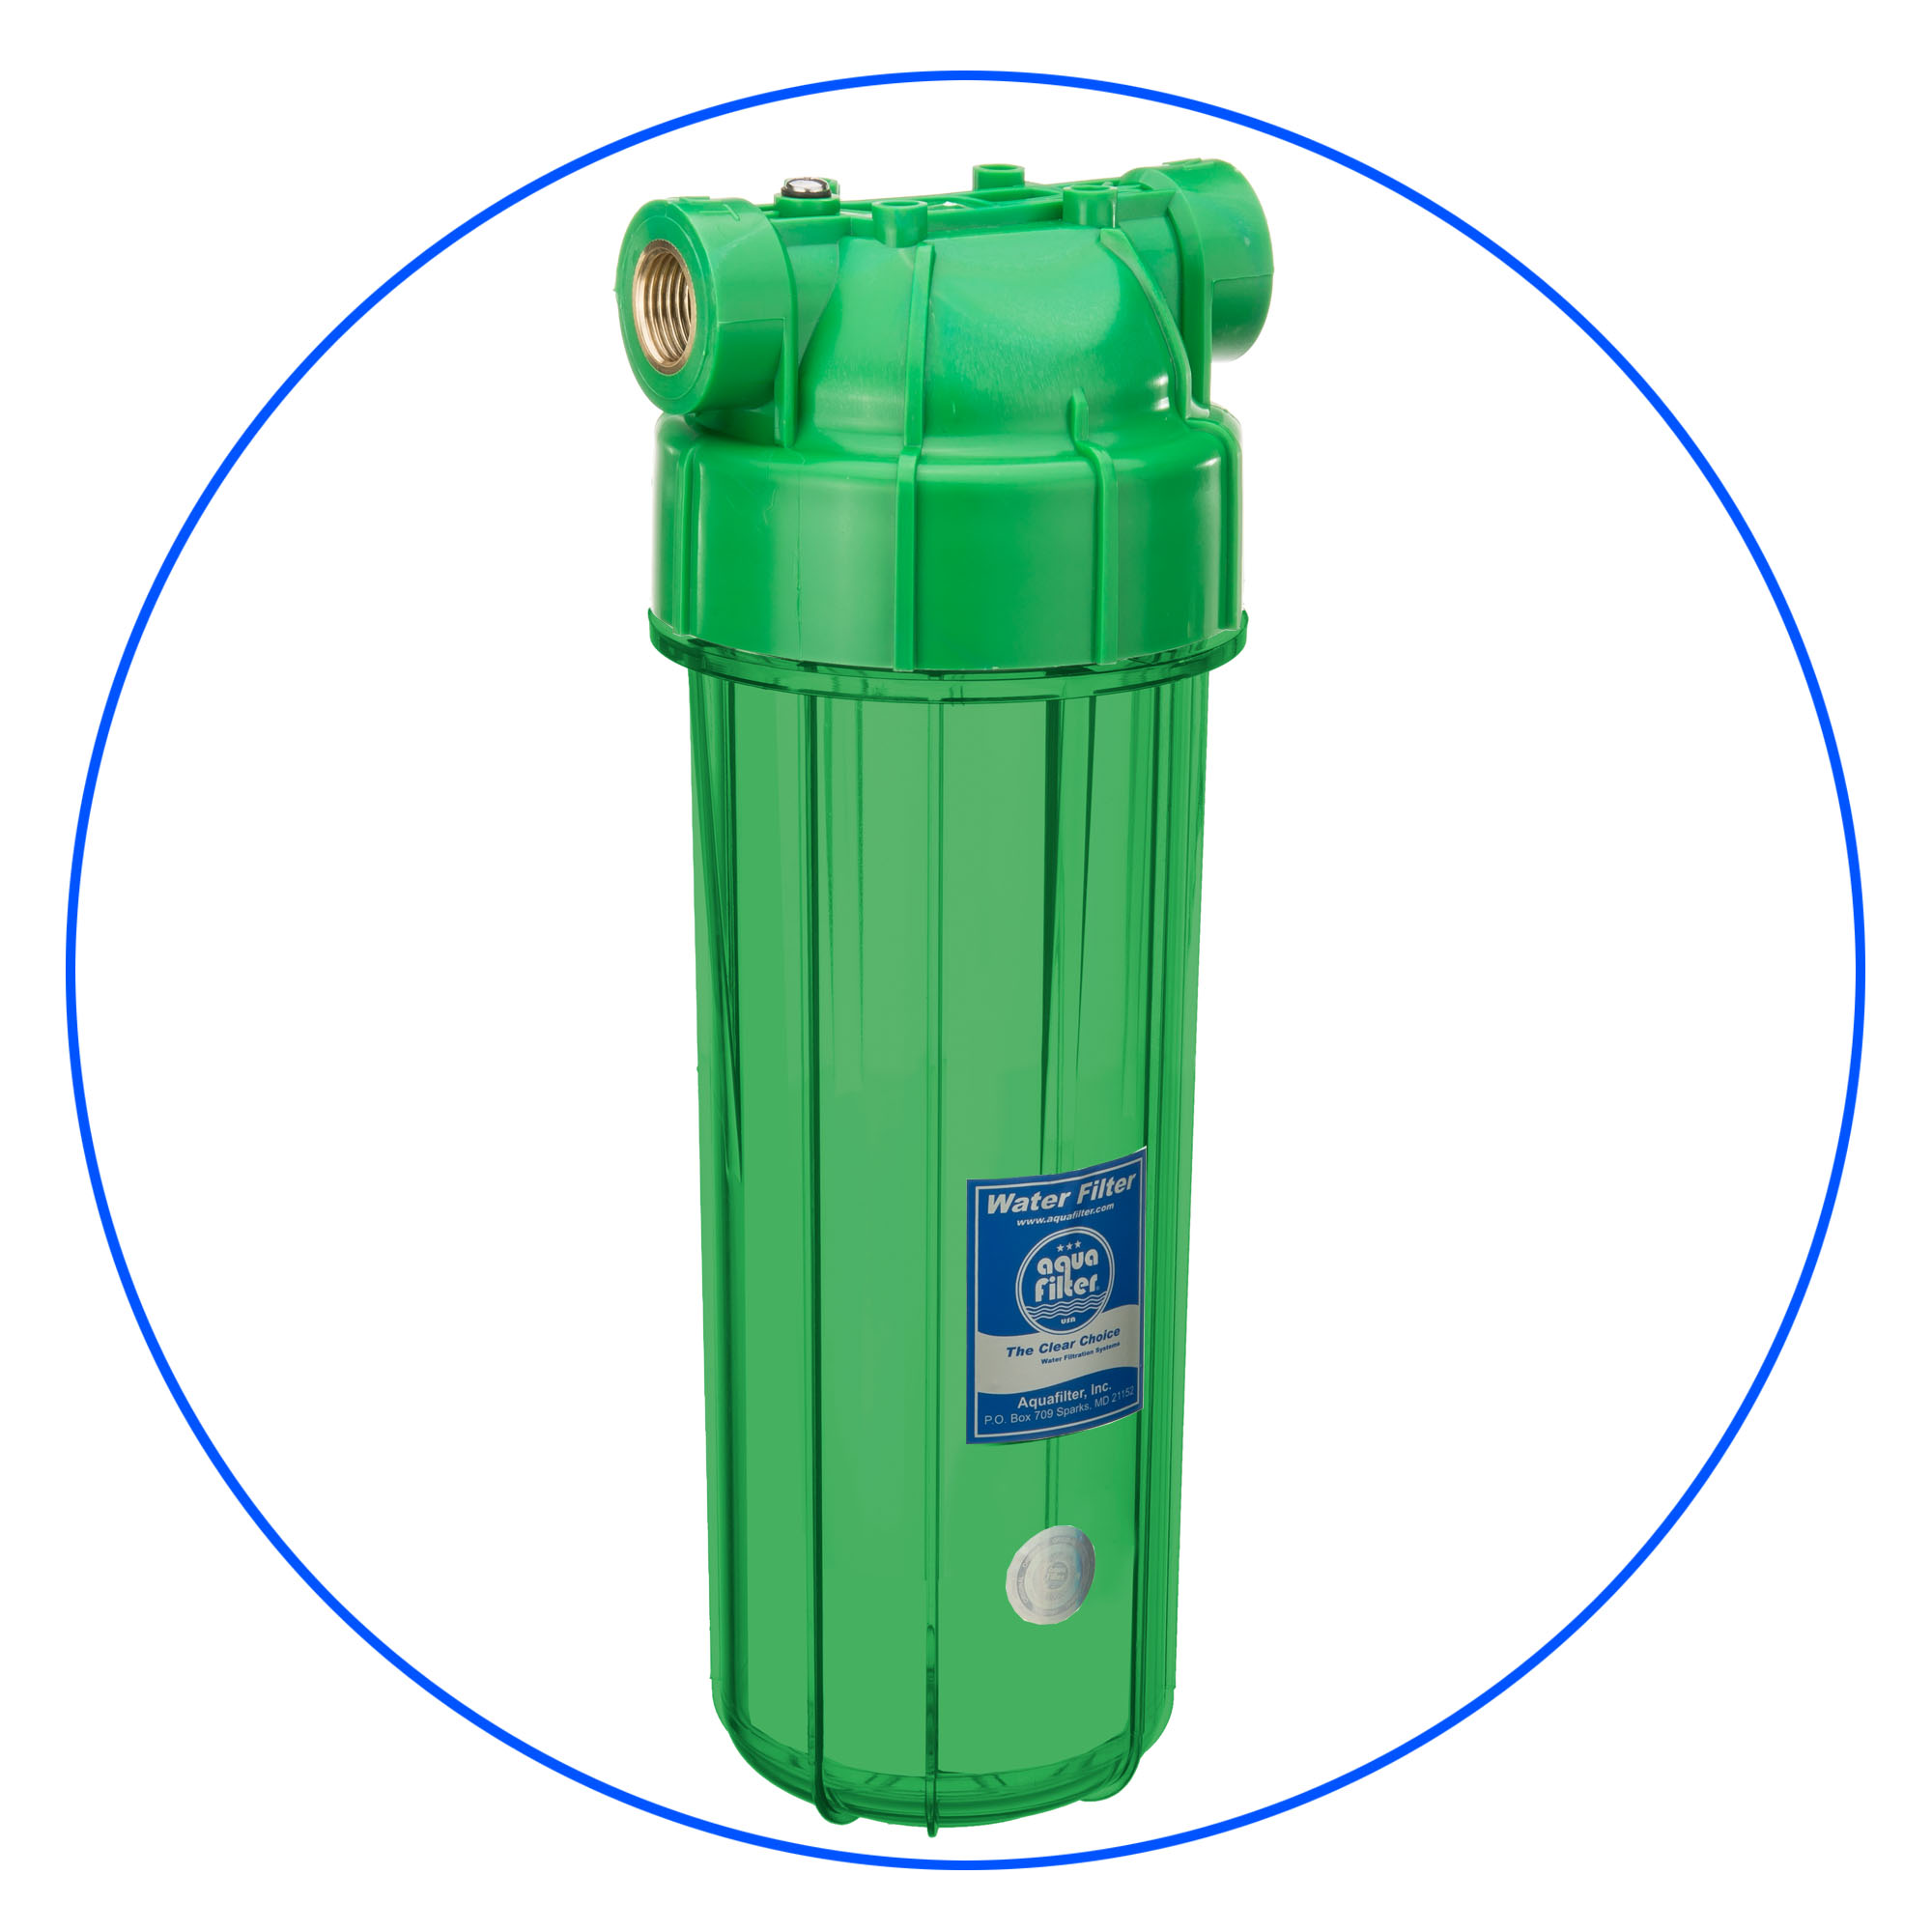 Bacteria Uv Resistant Water Filter Housing Fhprx B Aq Ab